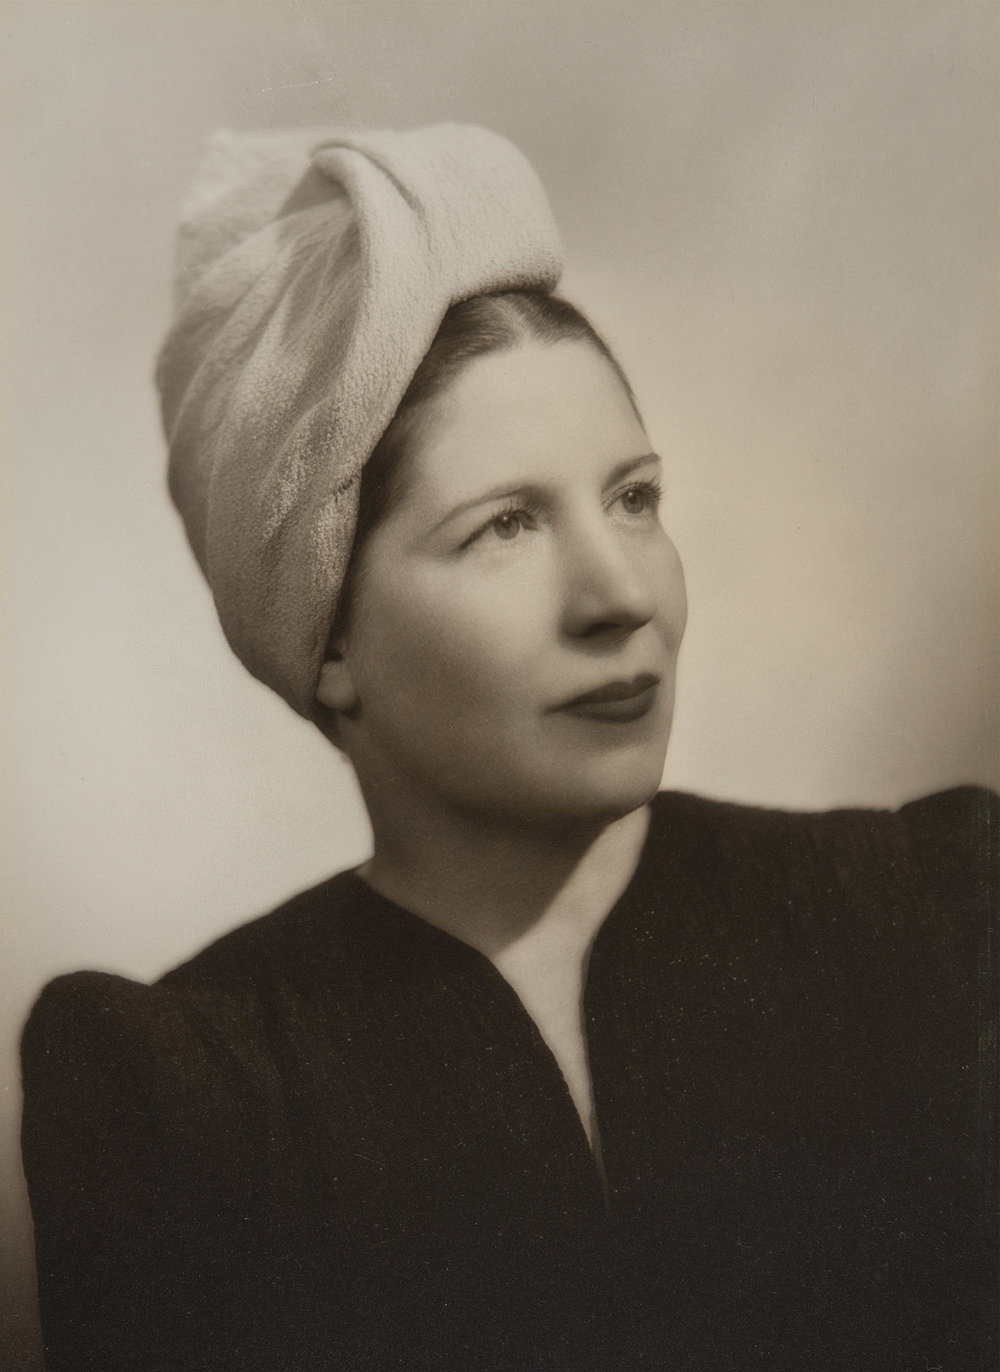 Marguerita Mergentime, 1930s. © Mergentime Family Archives